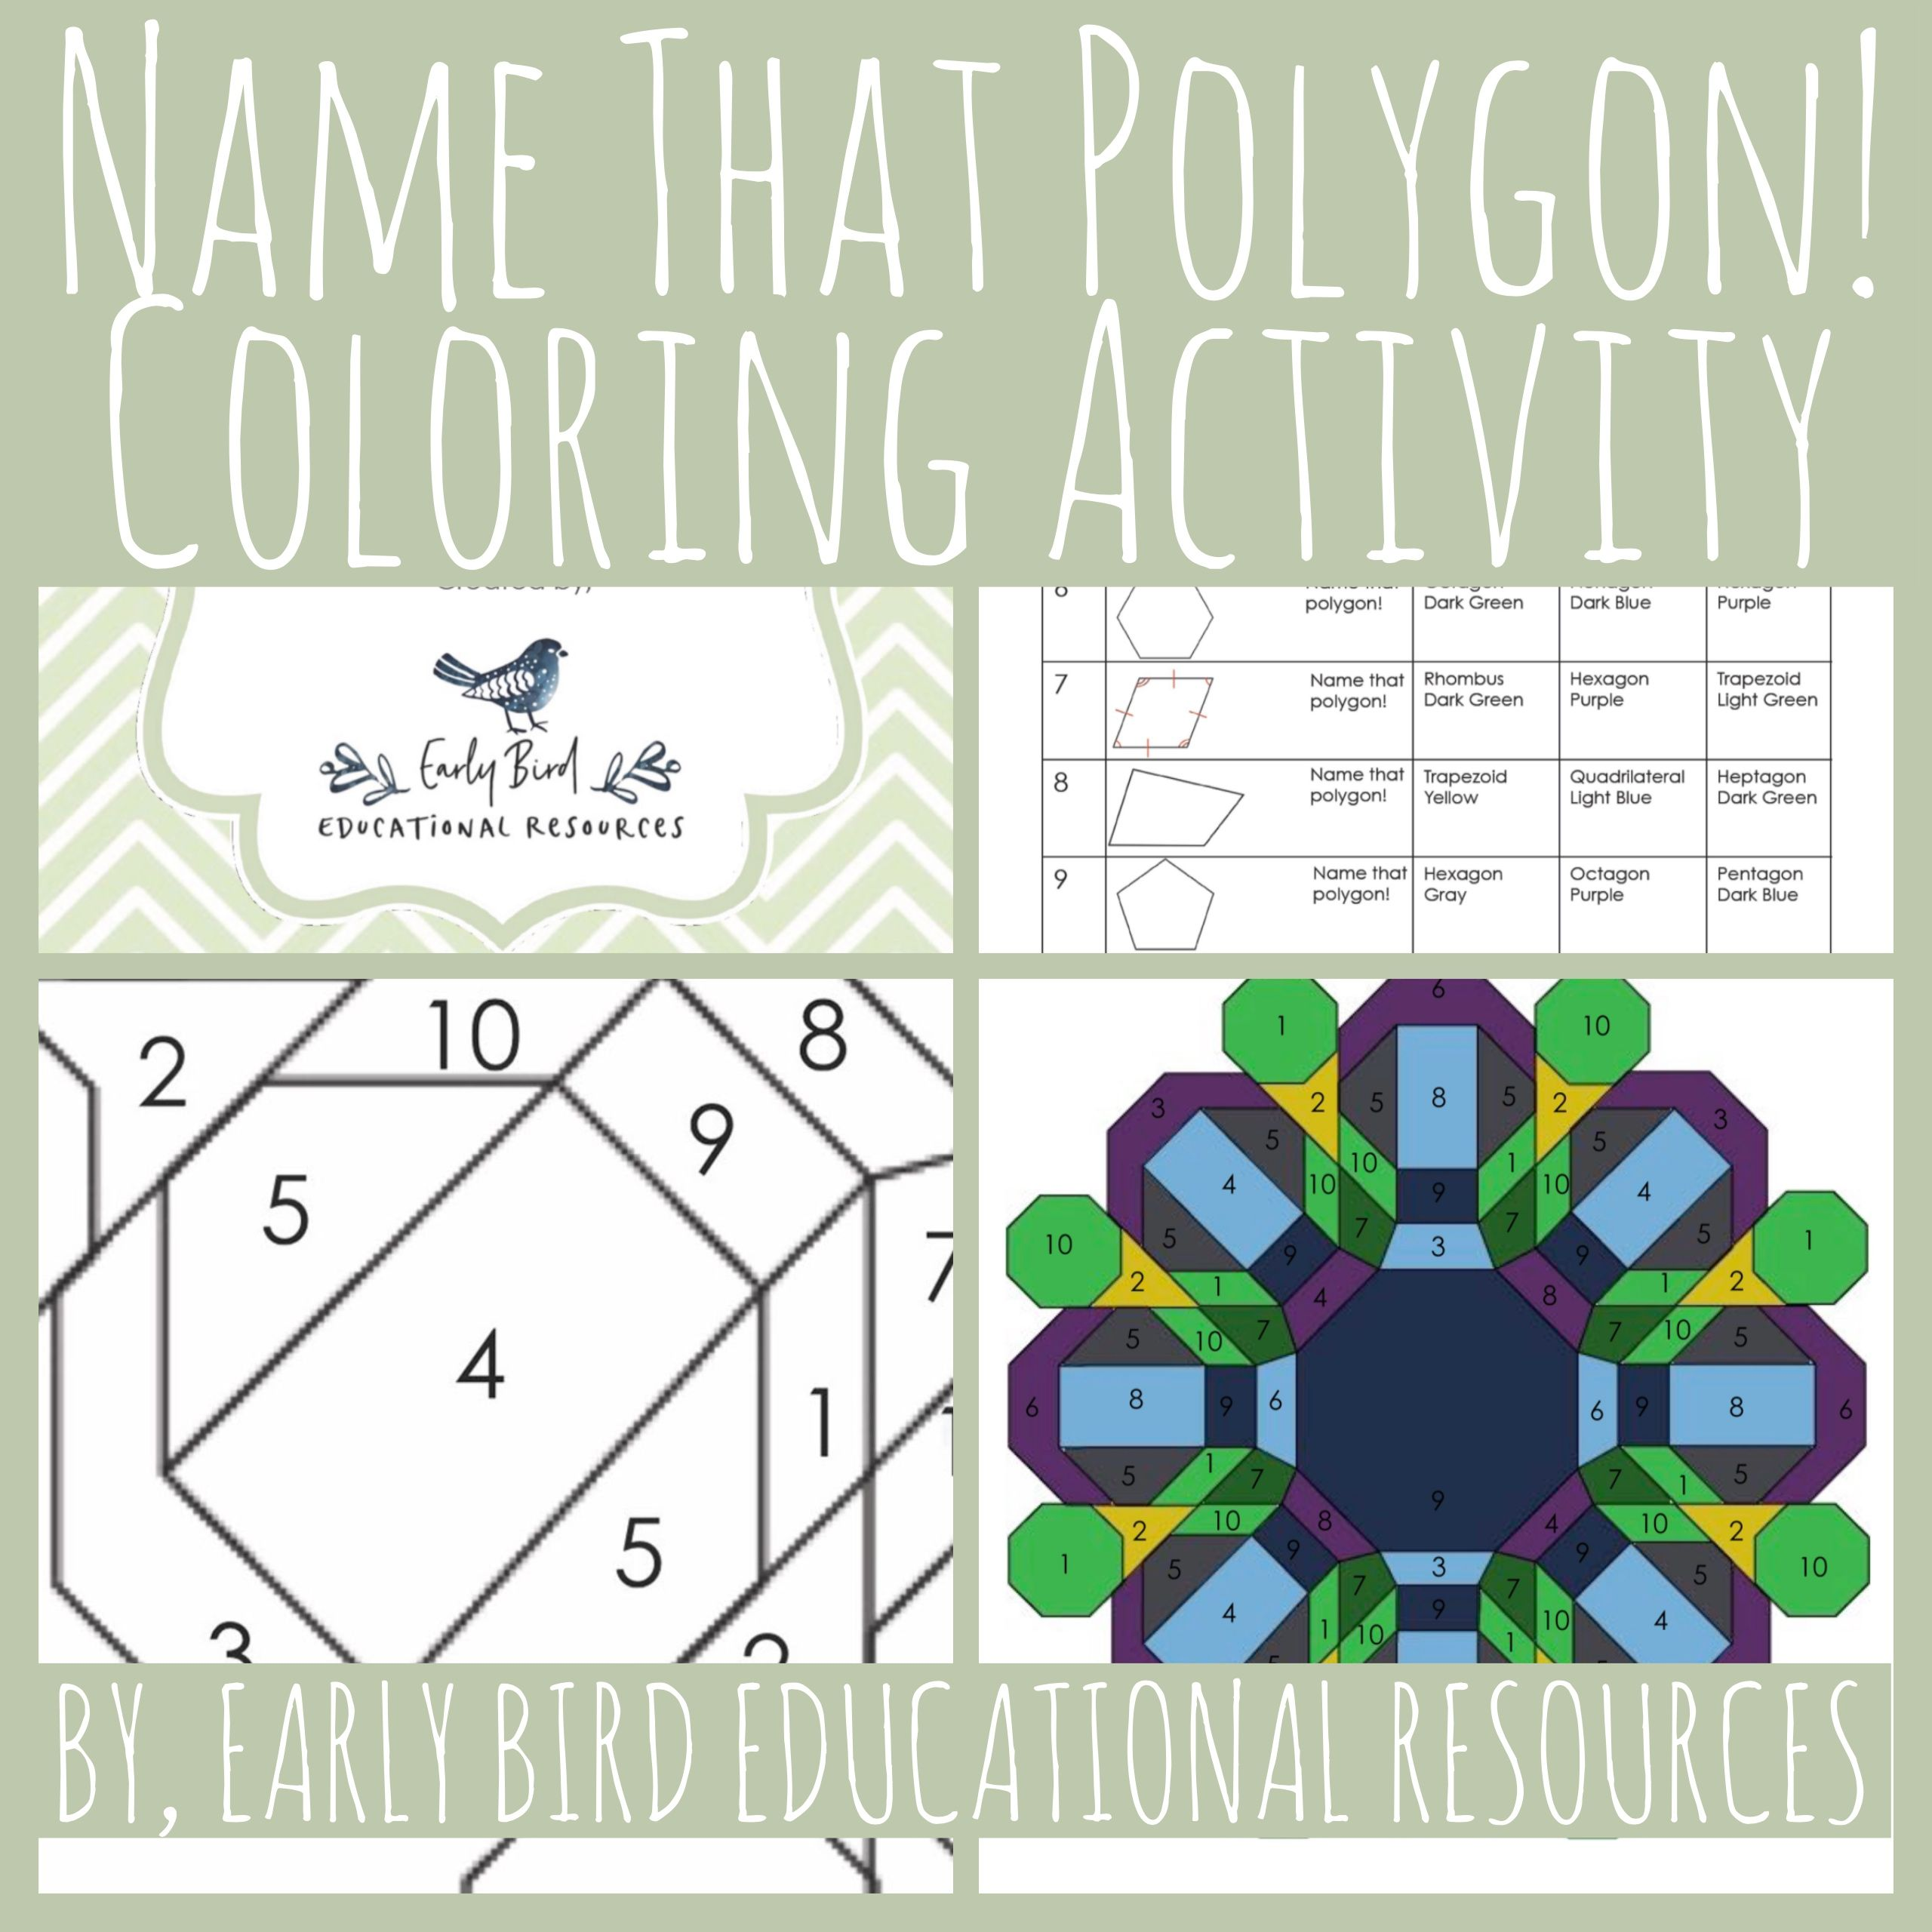 Name That Polygon Coloring Activity This Worksheet Is A